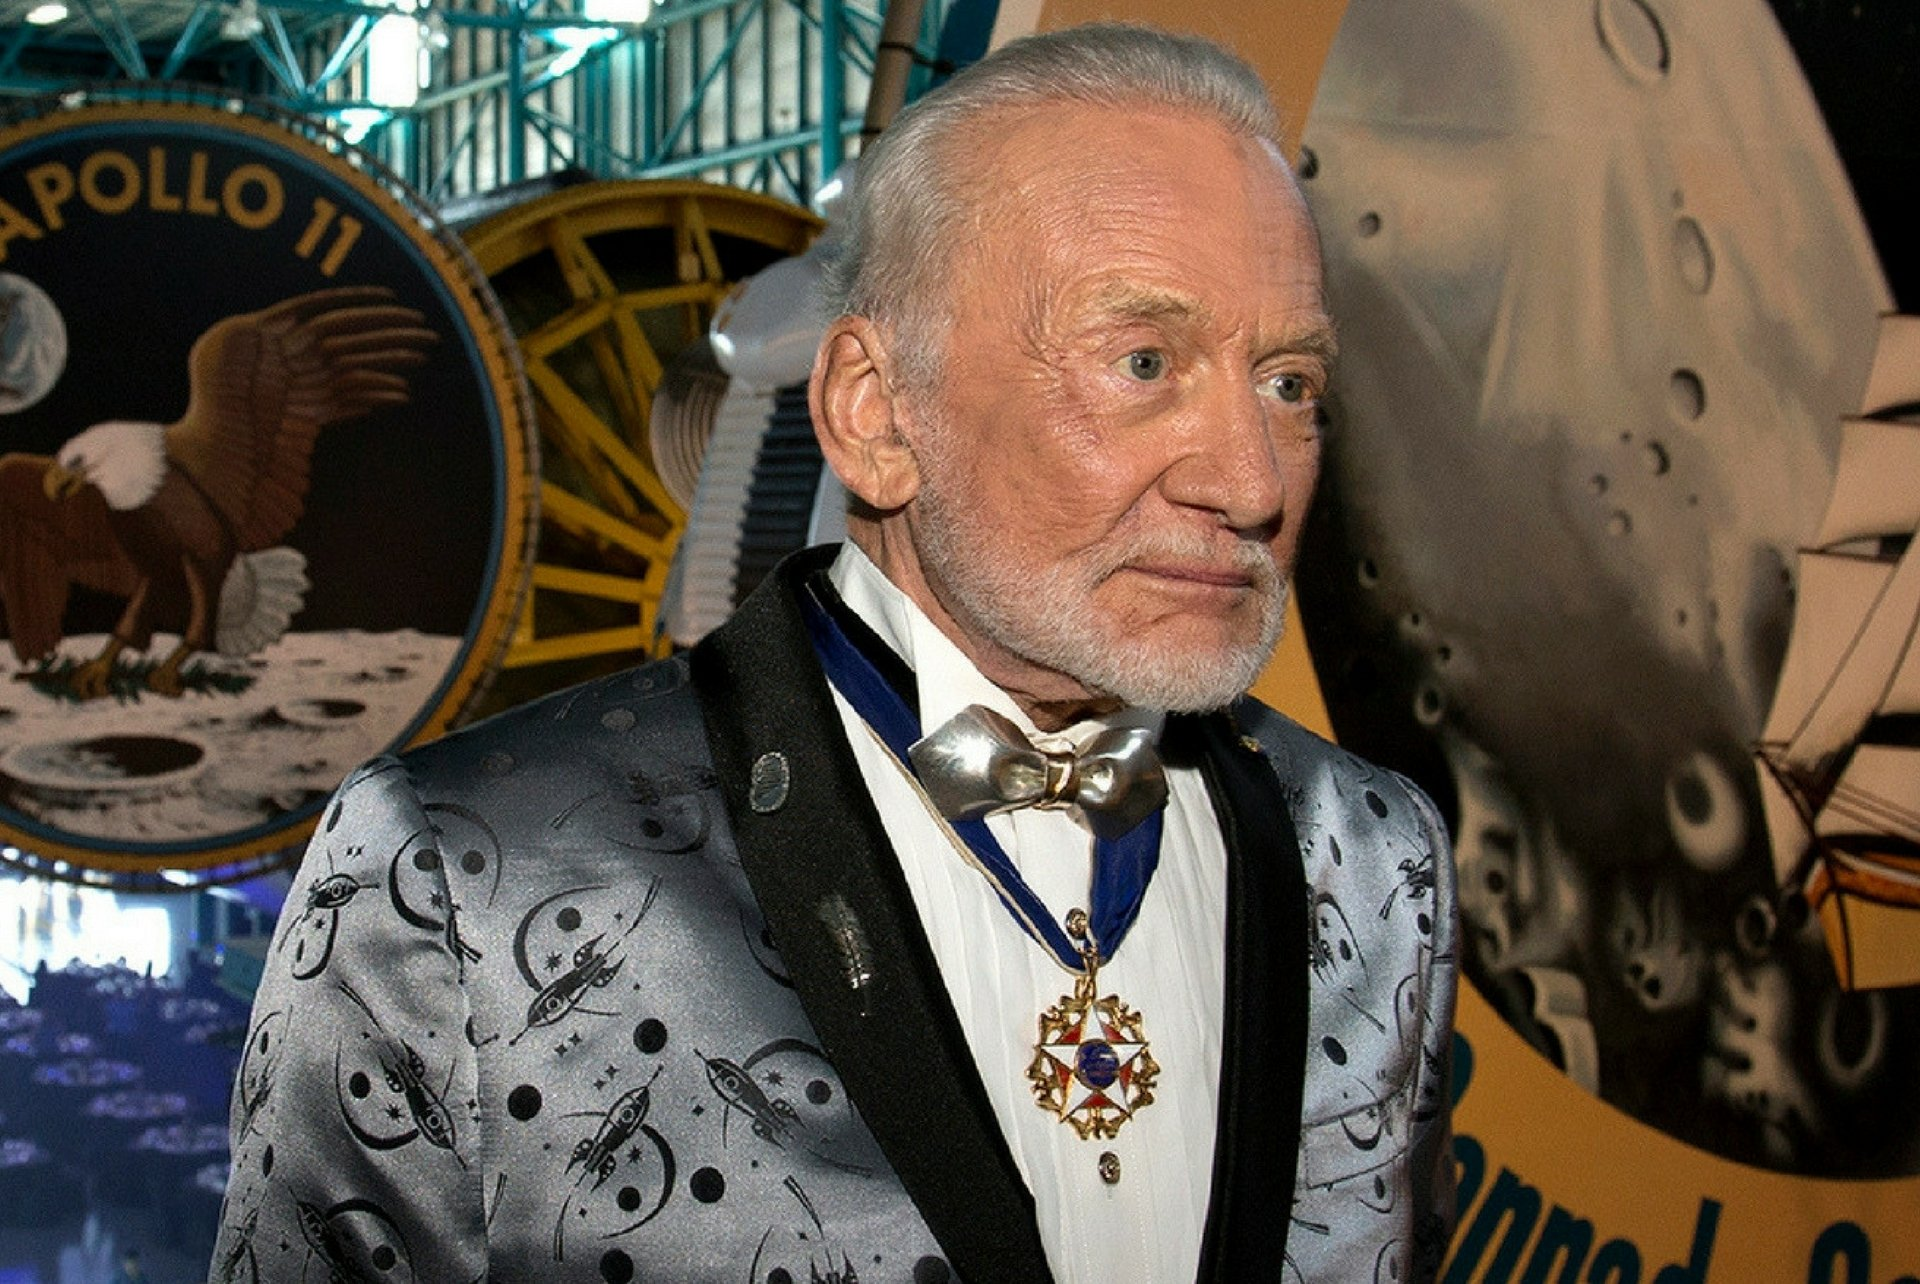 Sky&Telescope – Interview with Buzz Aldrin